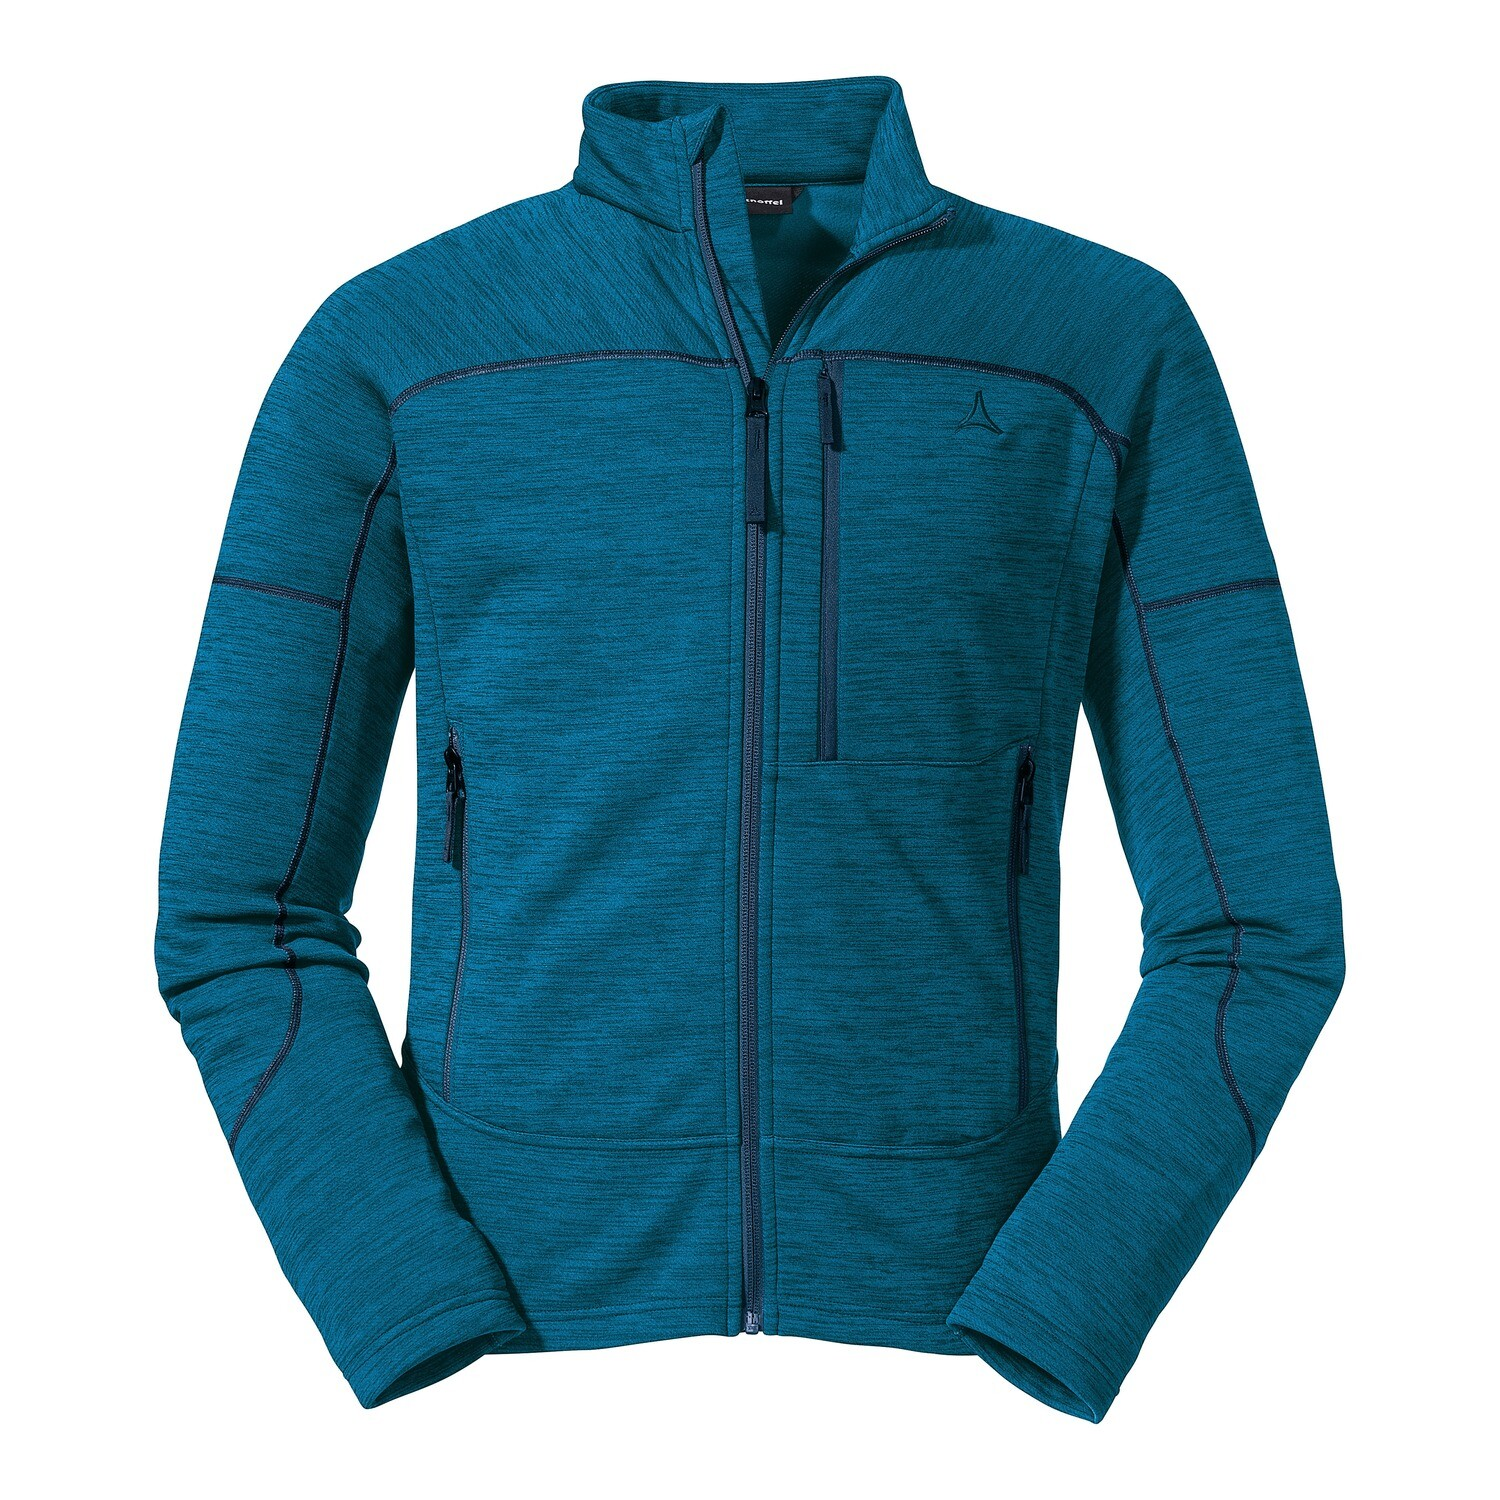 SCHÖFFEL Tonquin Fleece Jacket